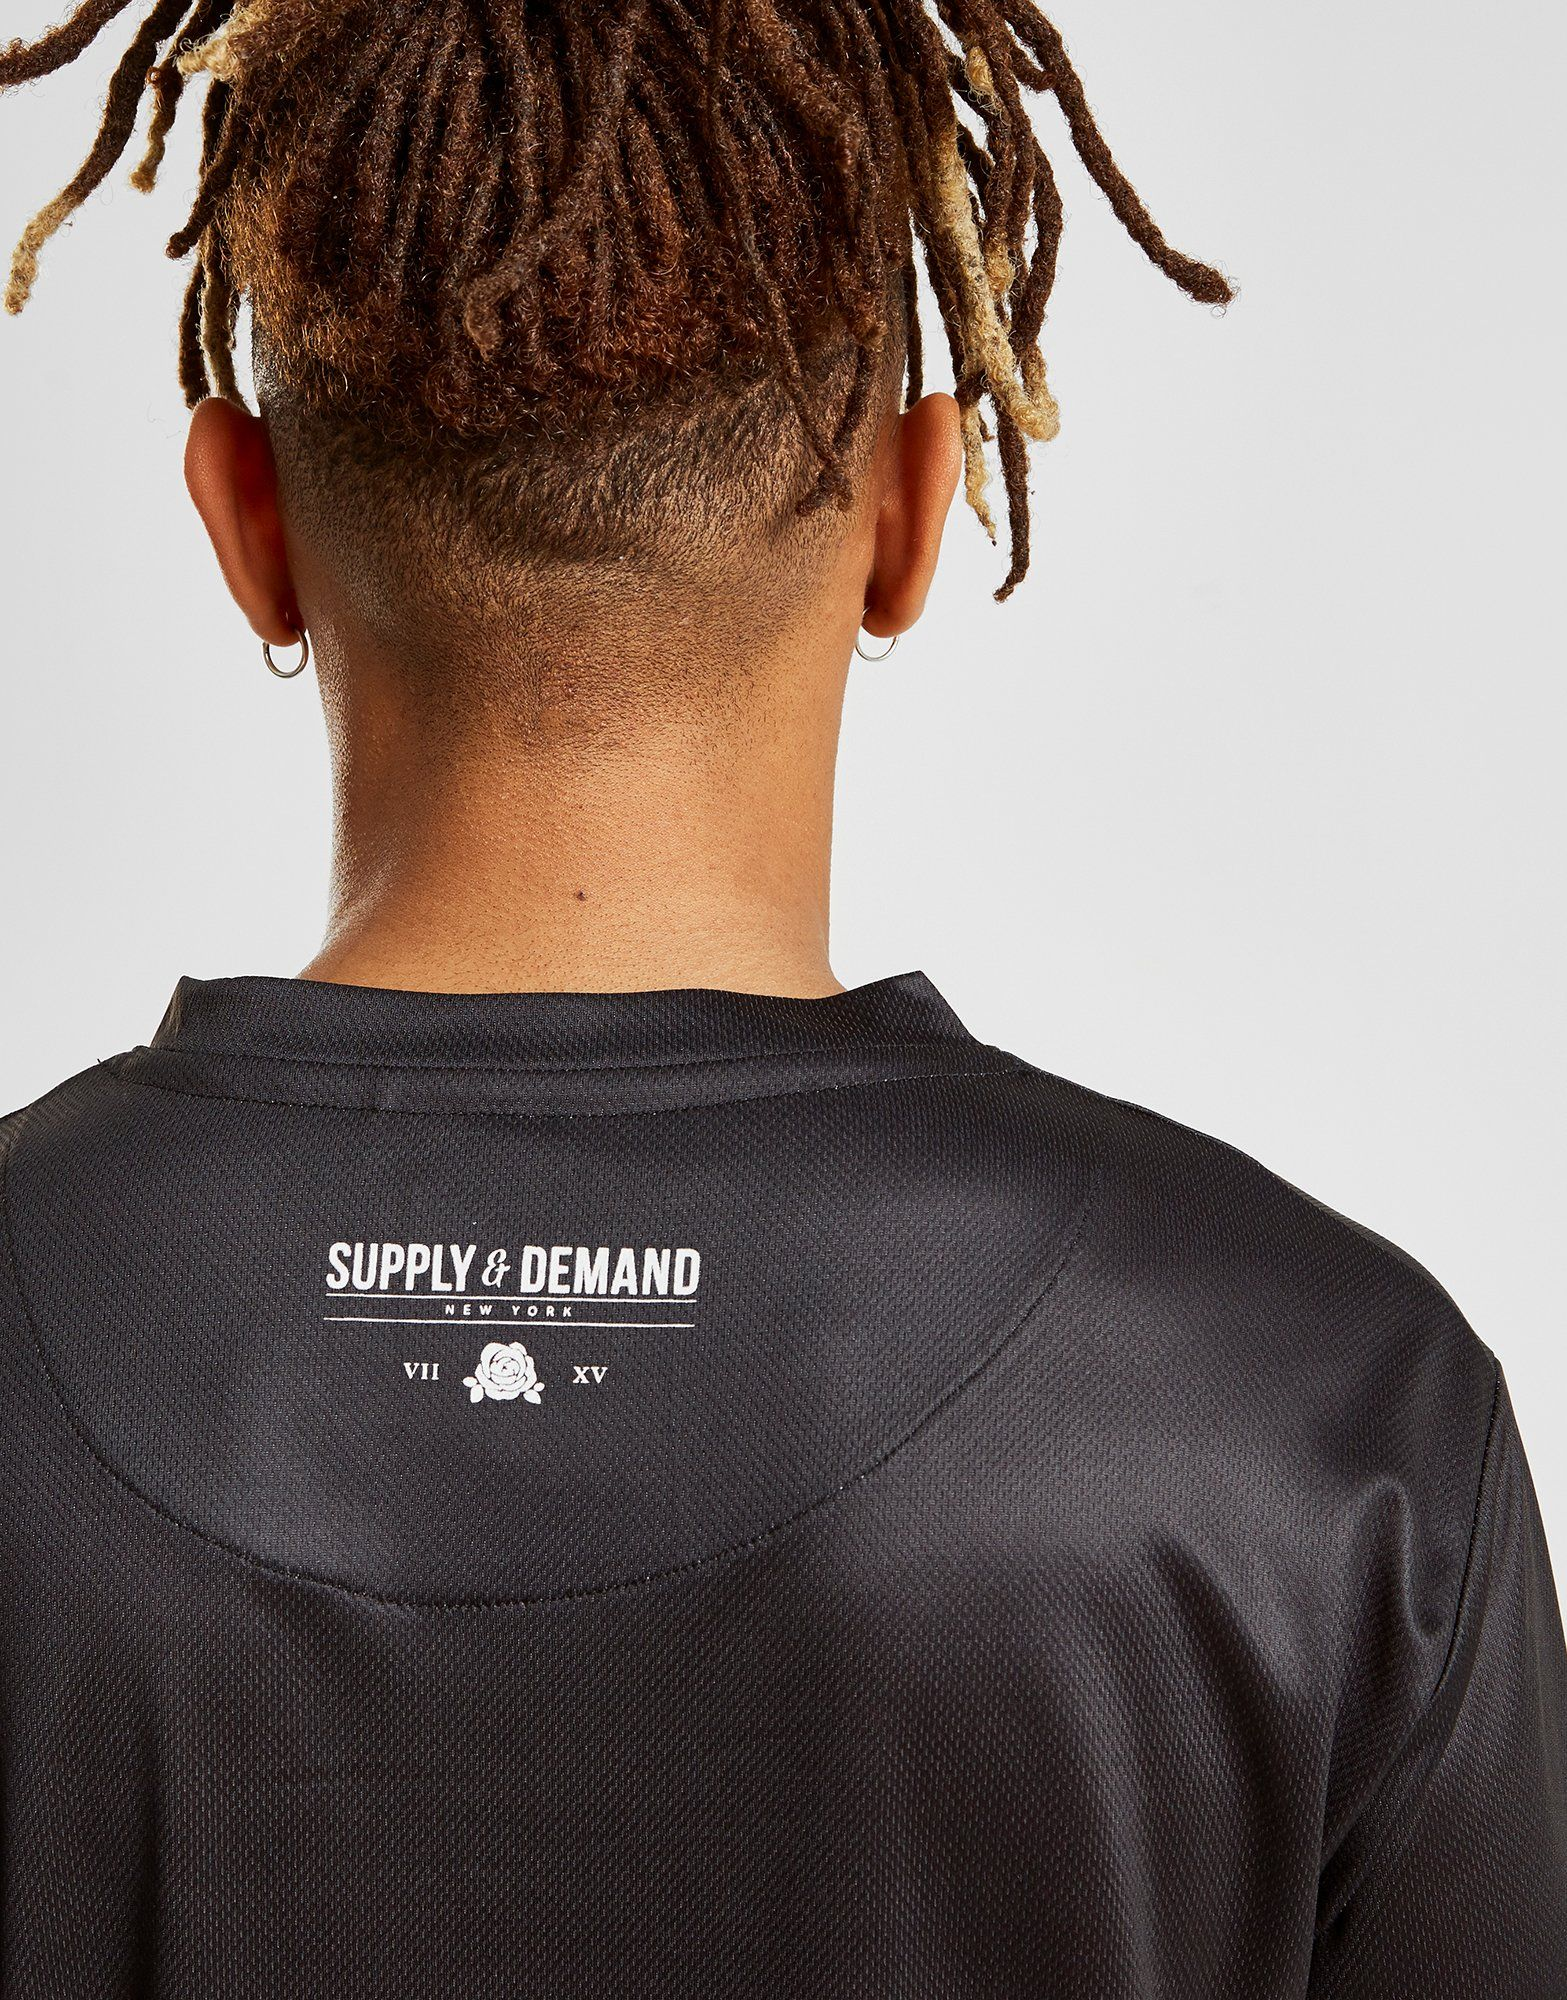 Supply & Demand Source T-Shirt